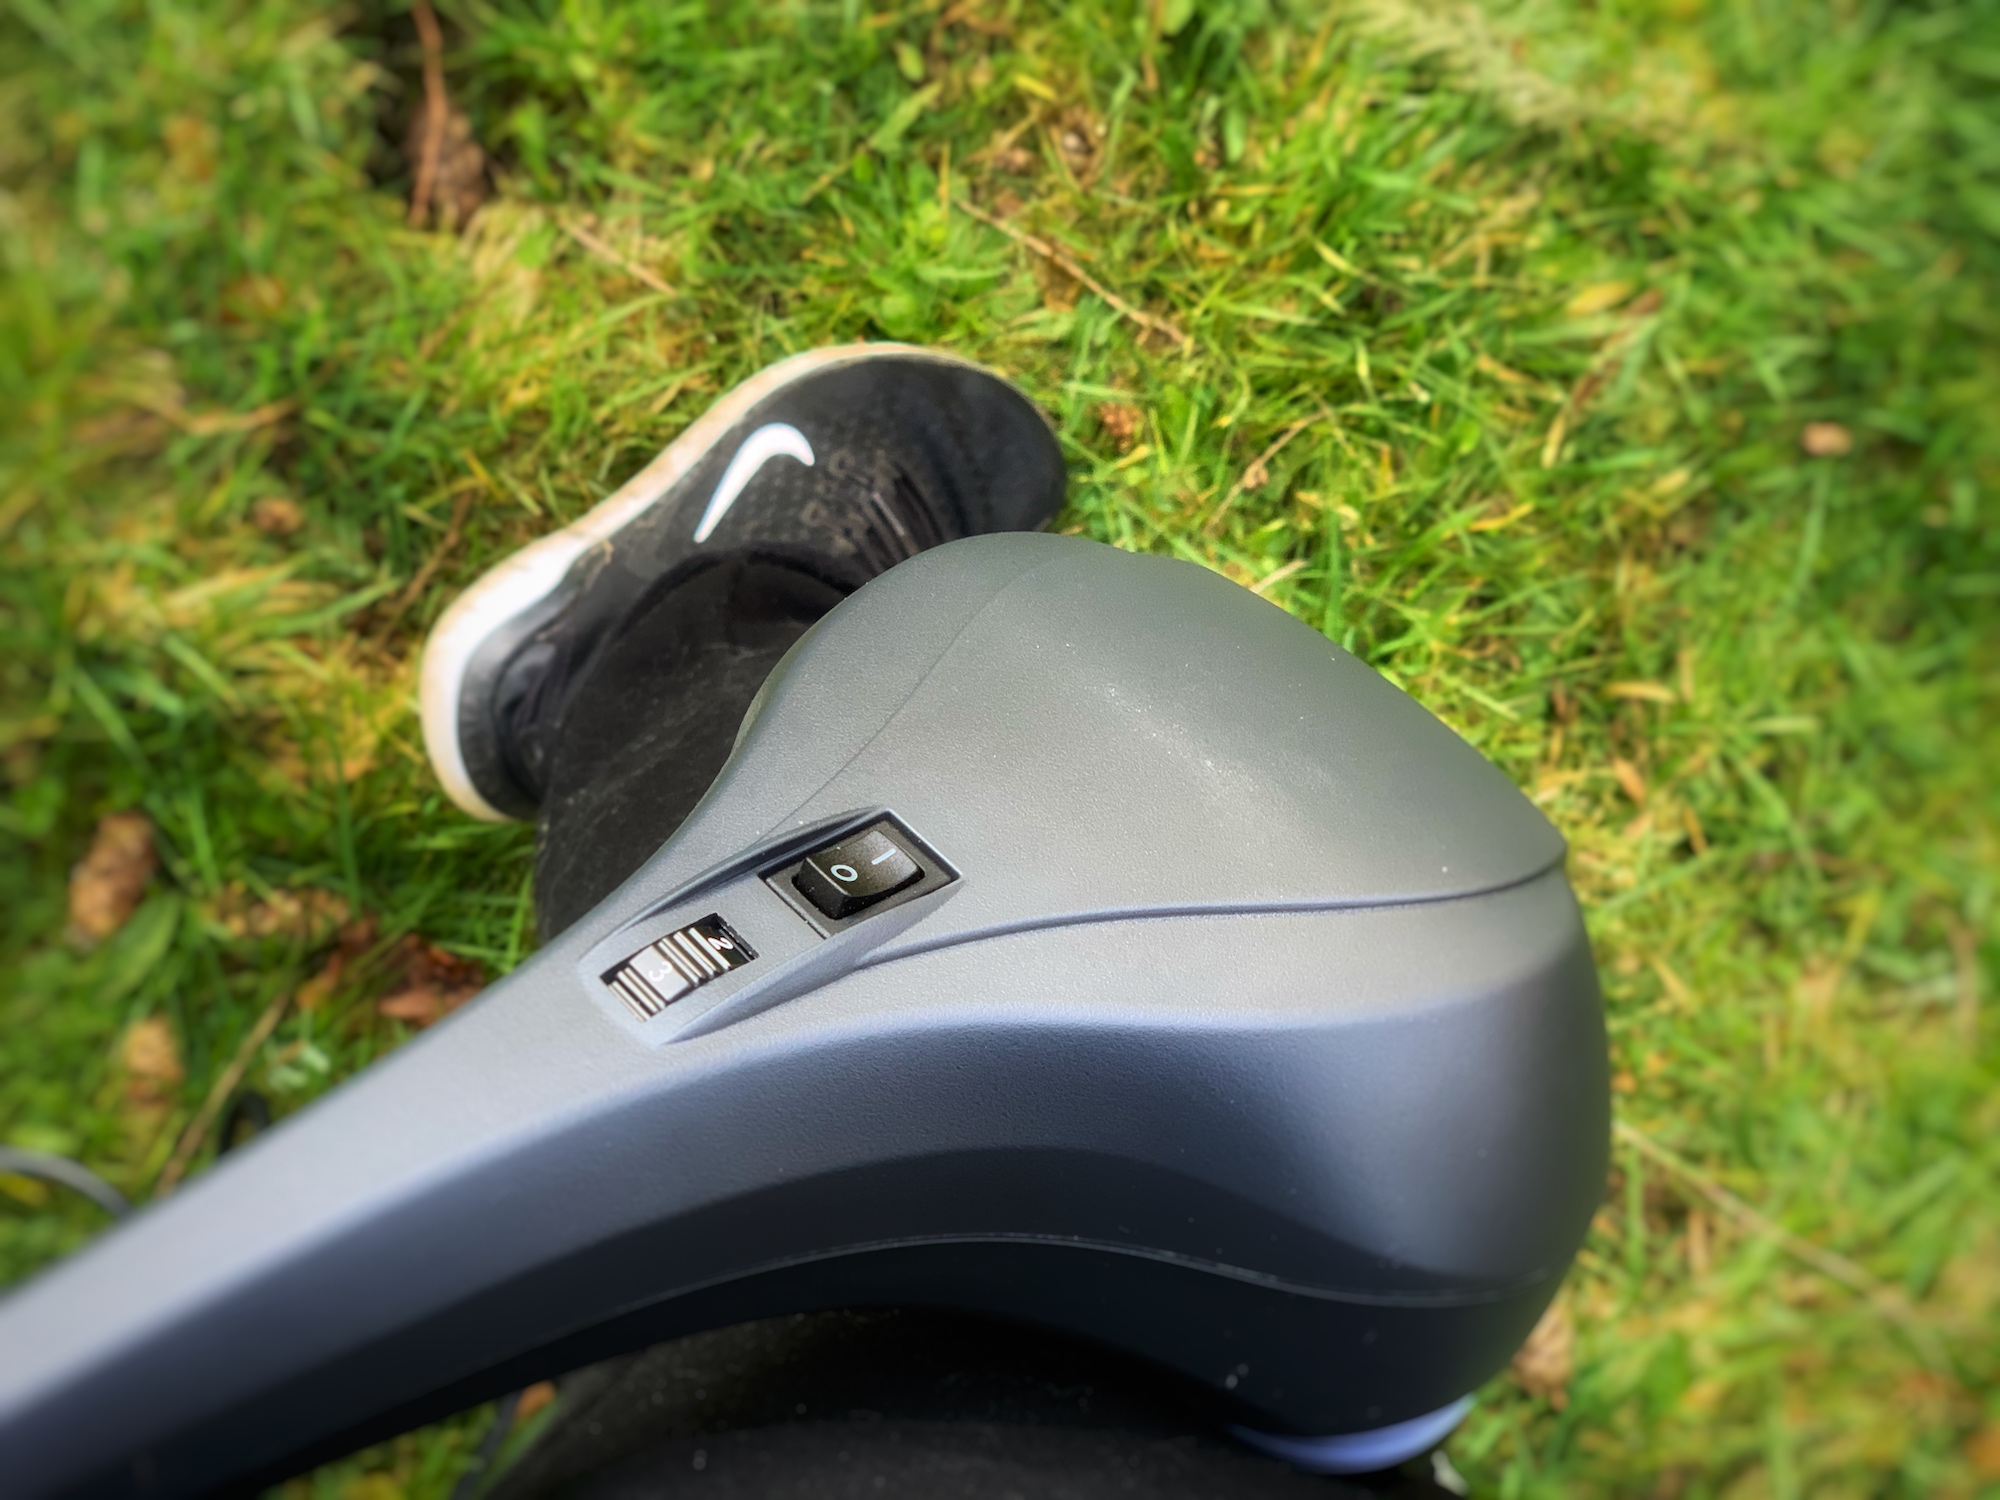 Thumper Mini Pro and Thumper Sport review